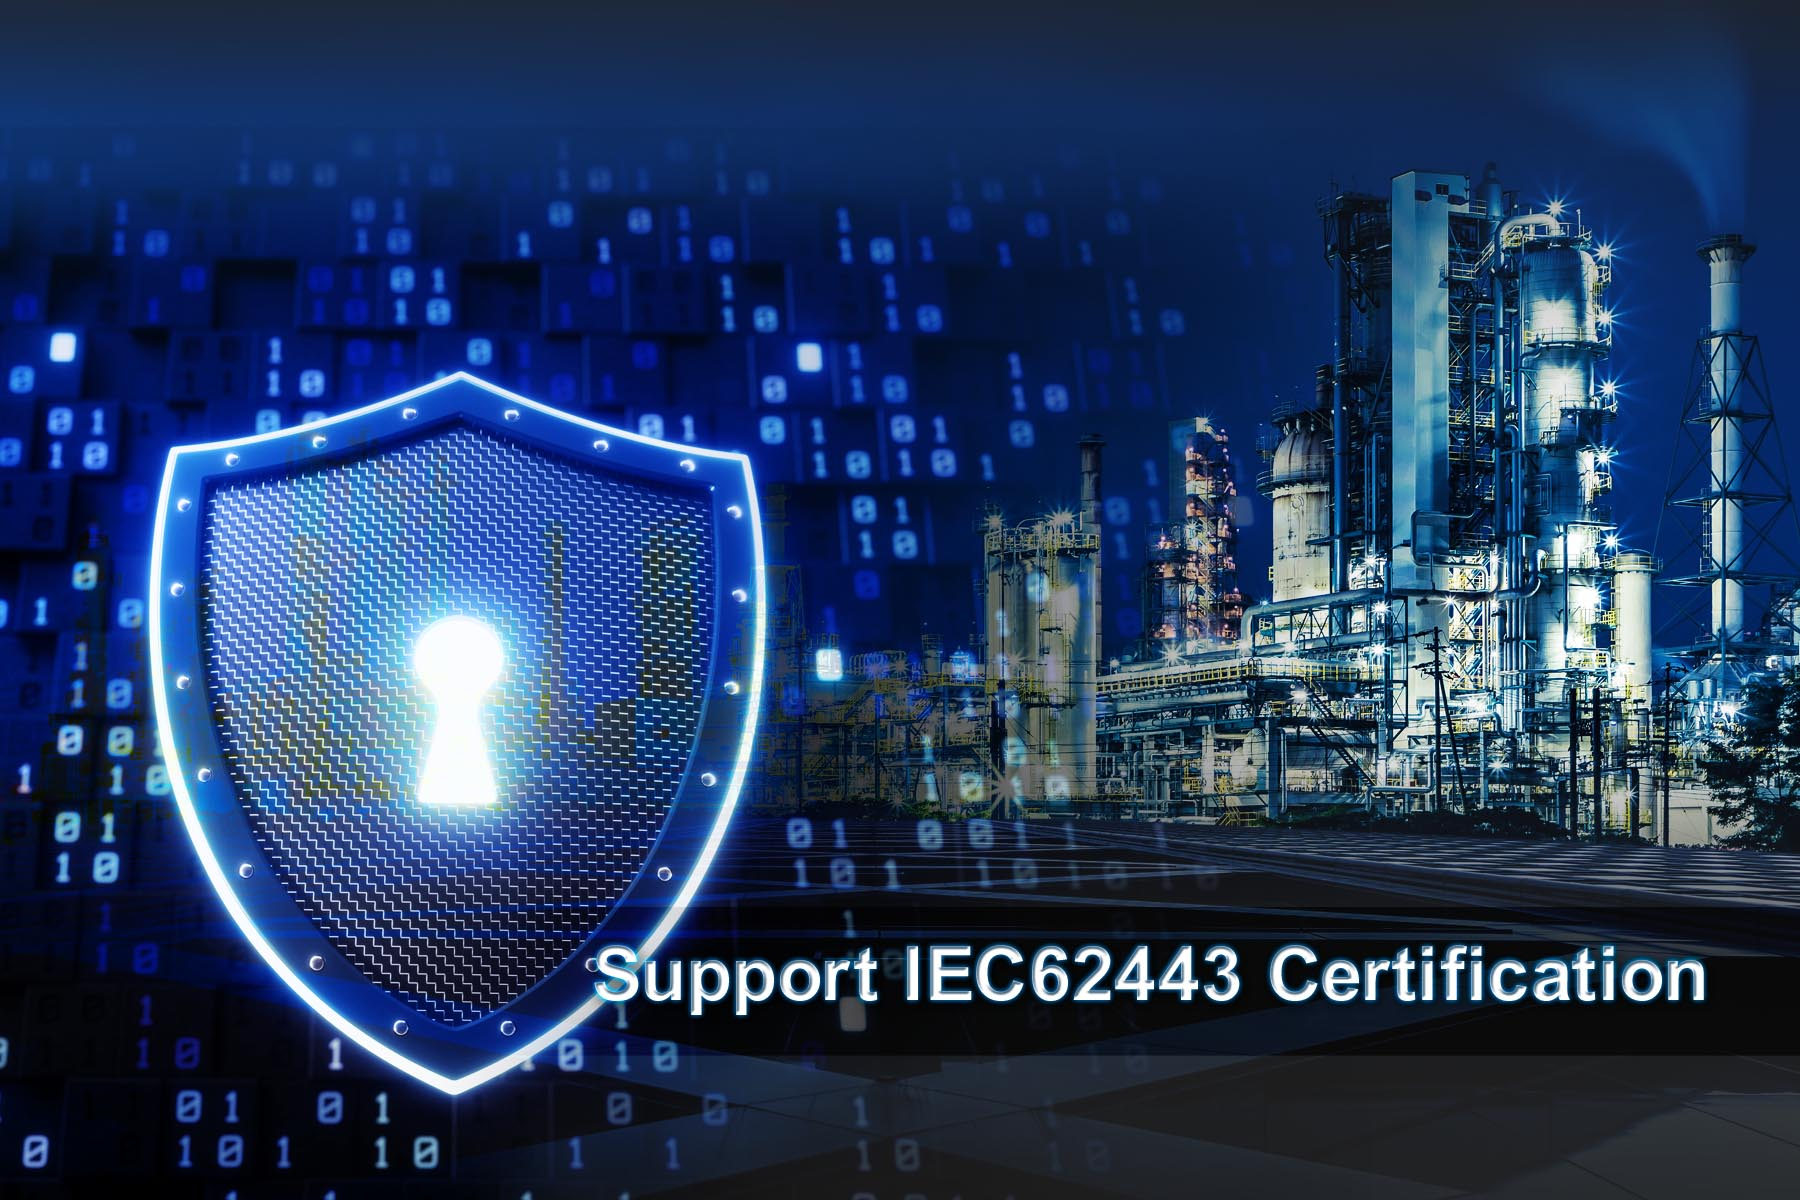 Security Solution Enables Certification Under IEC 62443-4-2